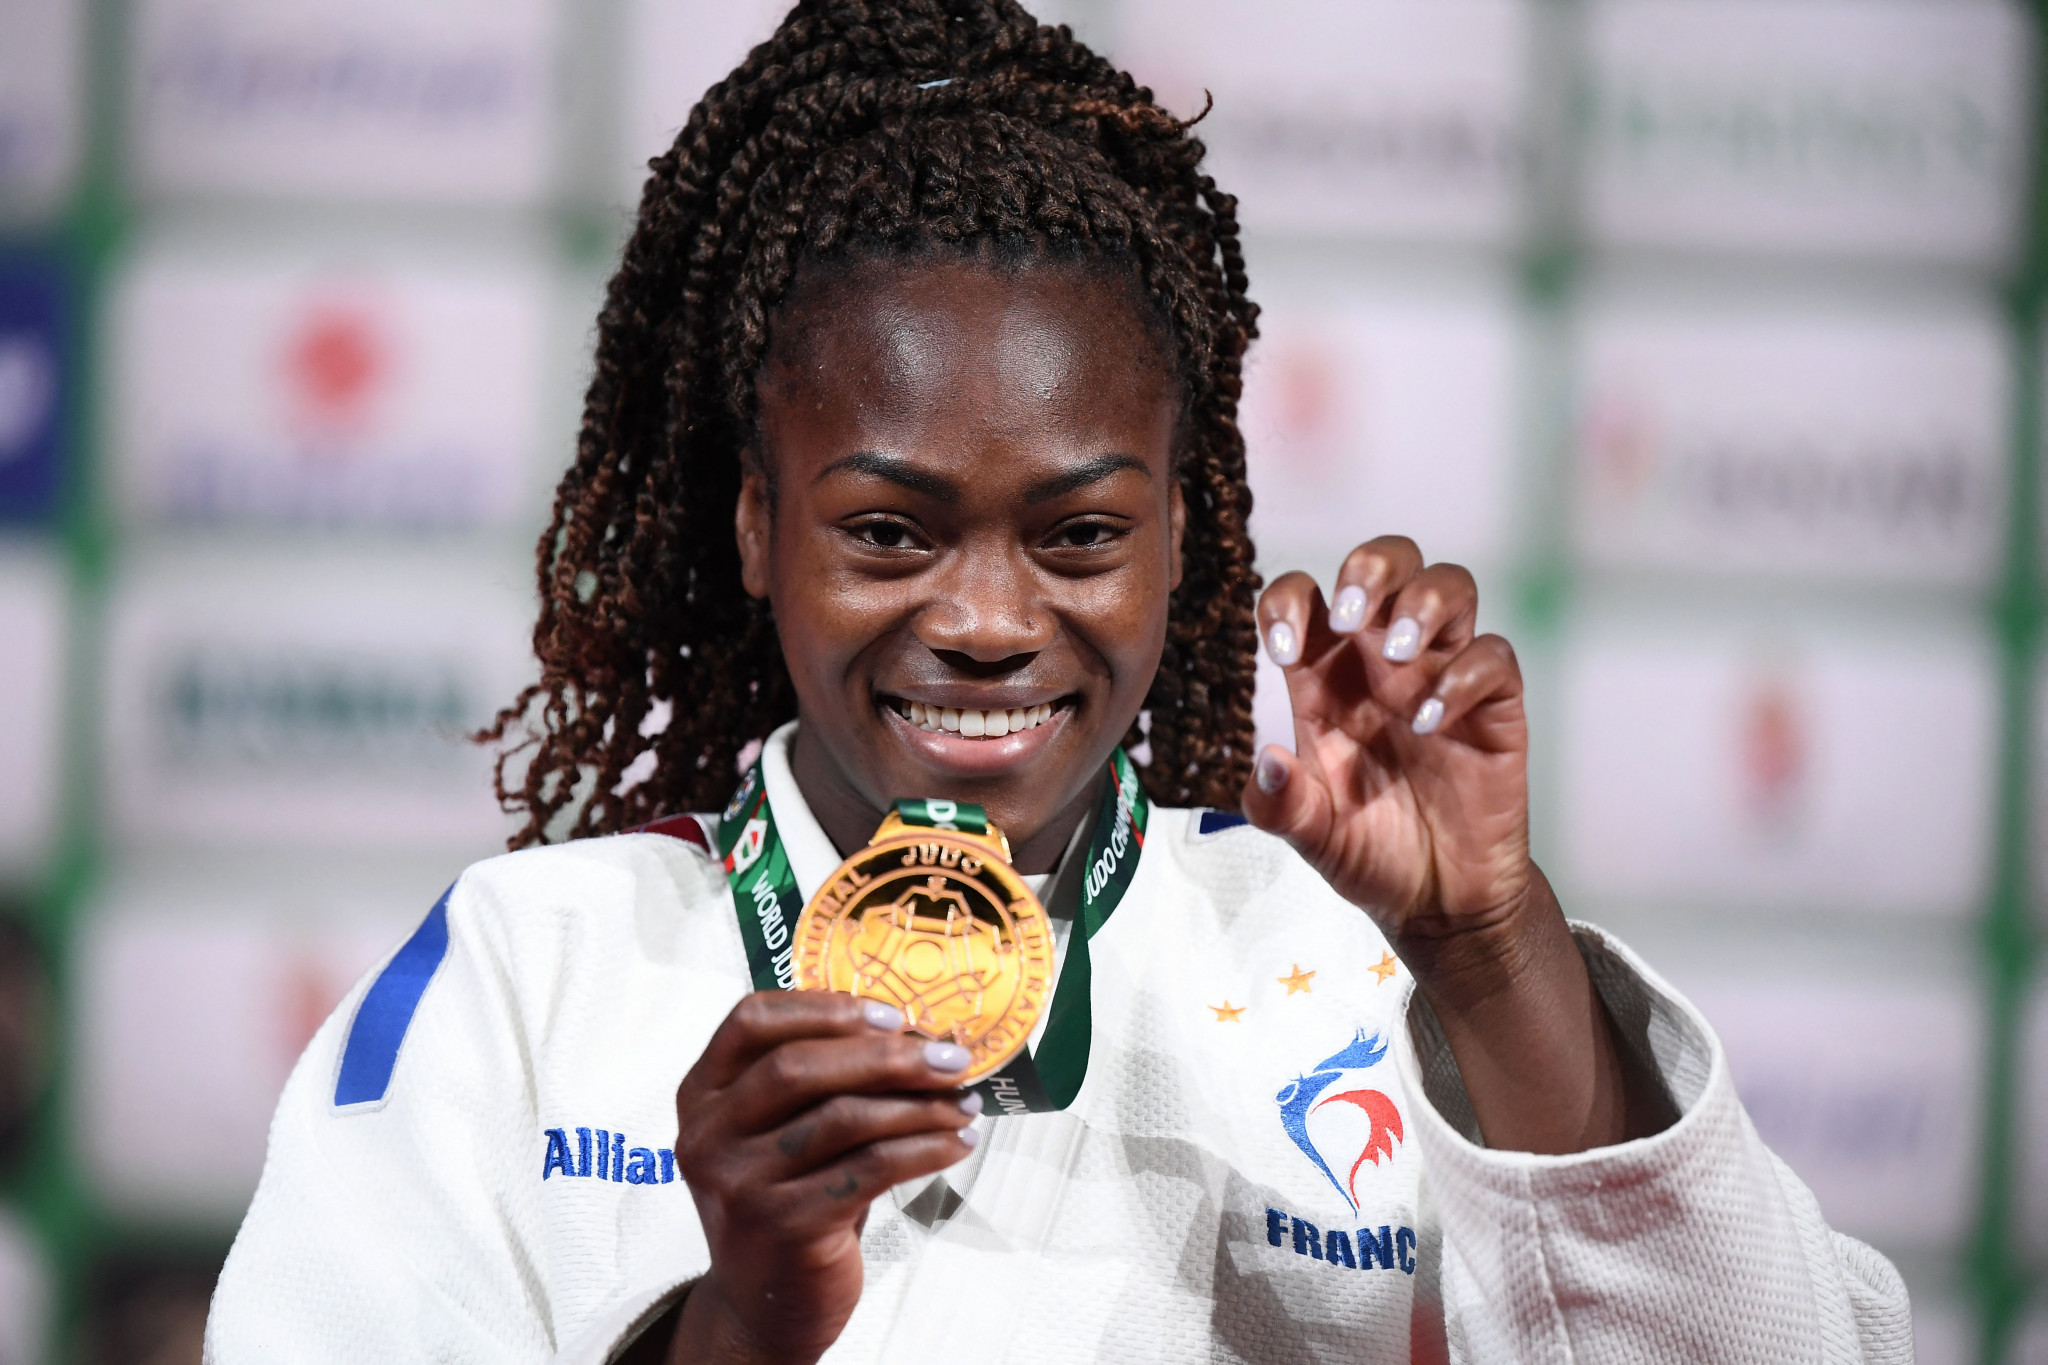 French judo star Agbegnenou plans to take year-long break after Tokyo 2020